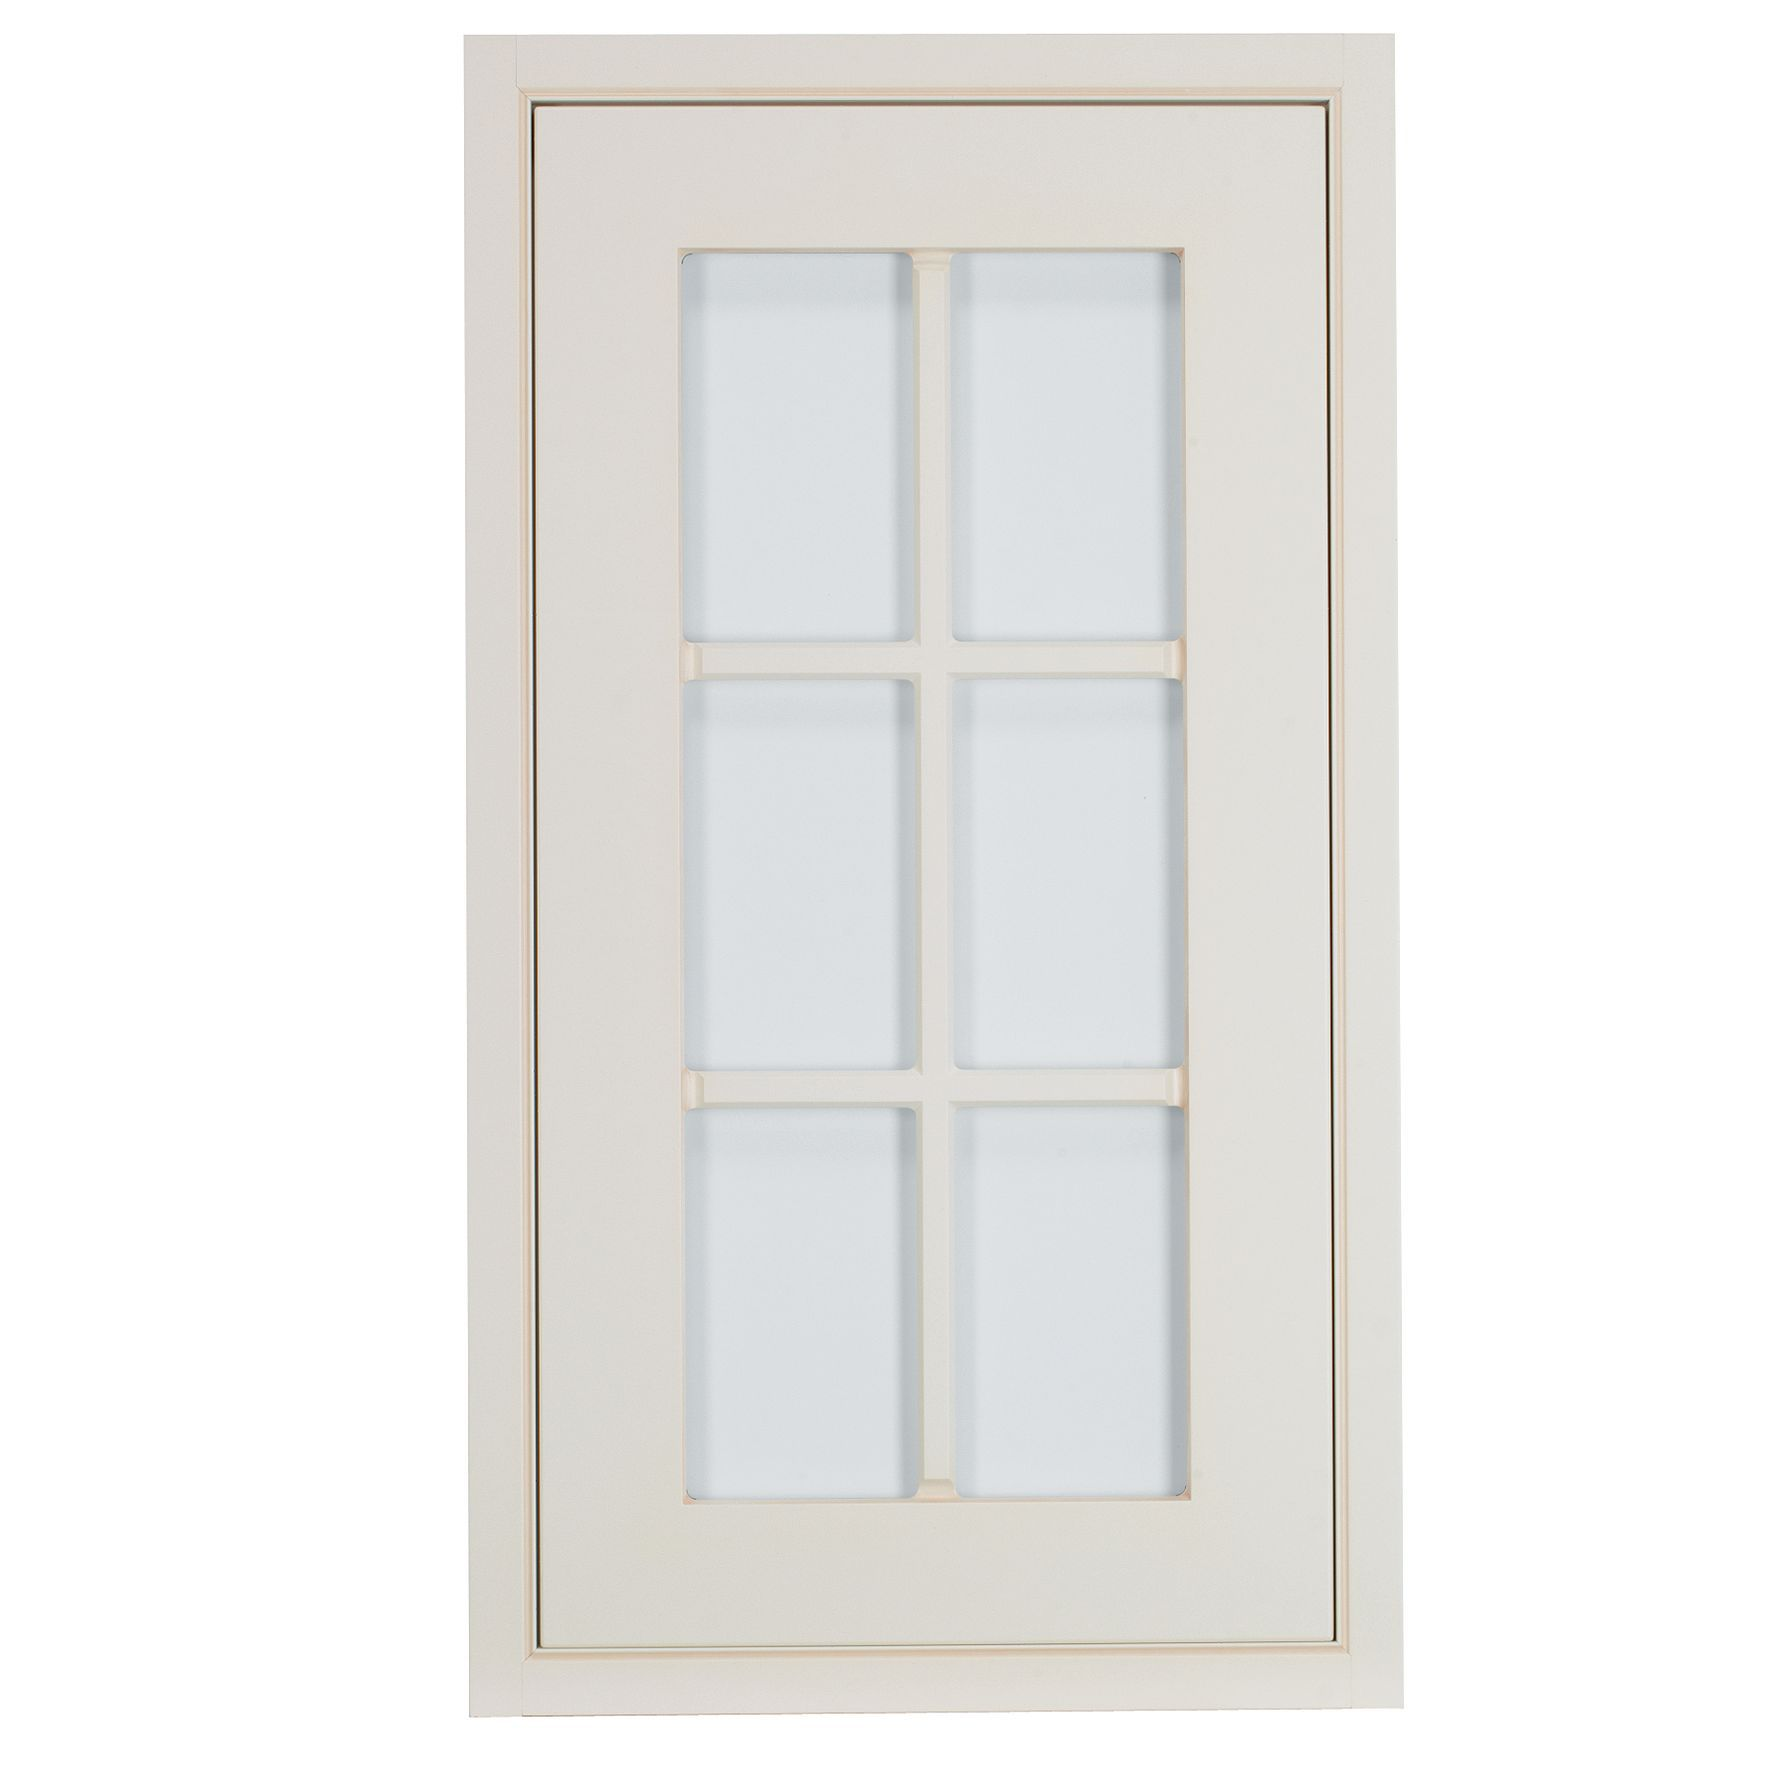 Cooke & Lewis Woburn Framed Ivory Tall Glazed Door (w)500mm